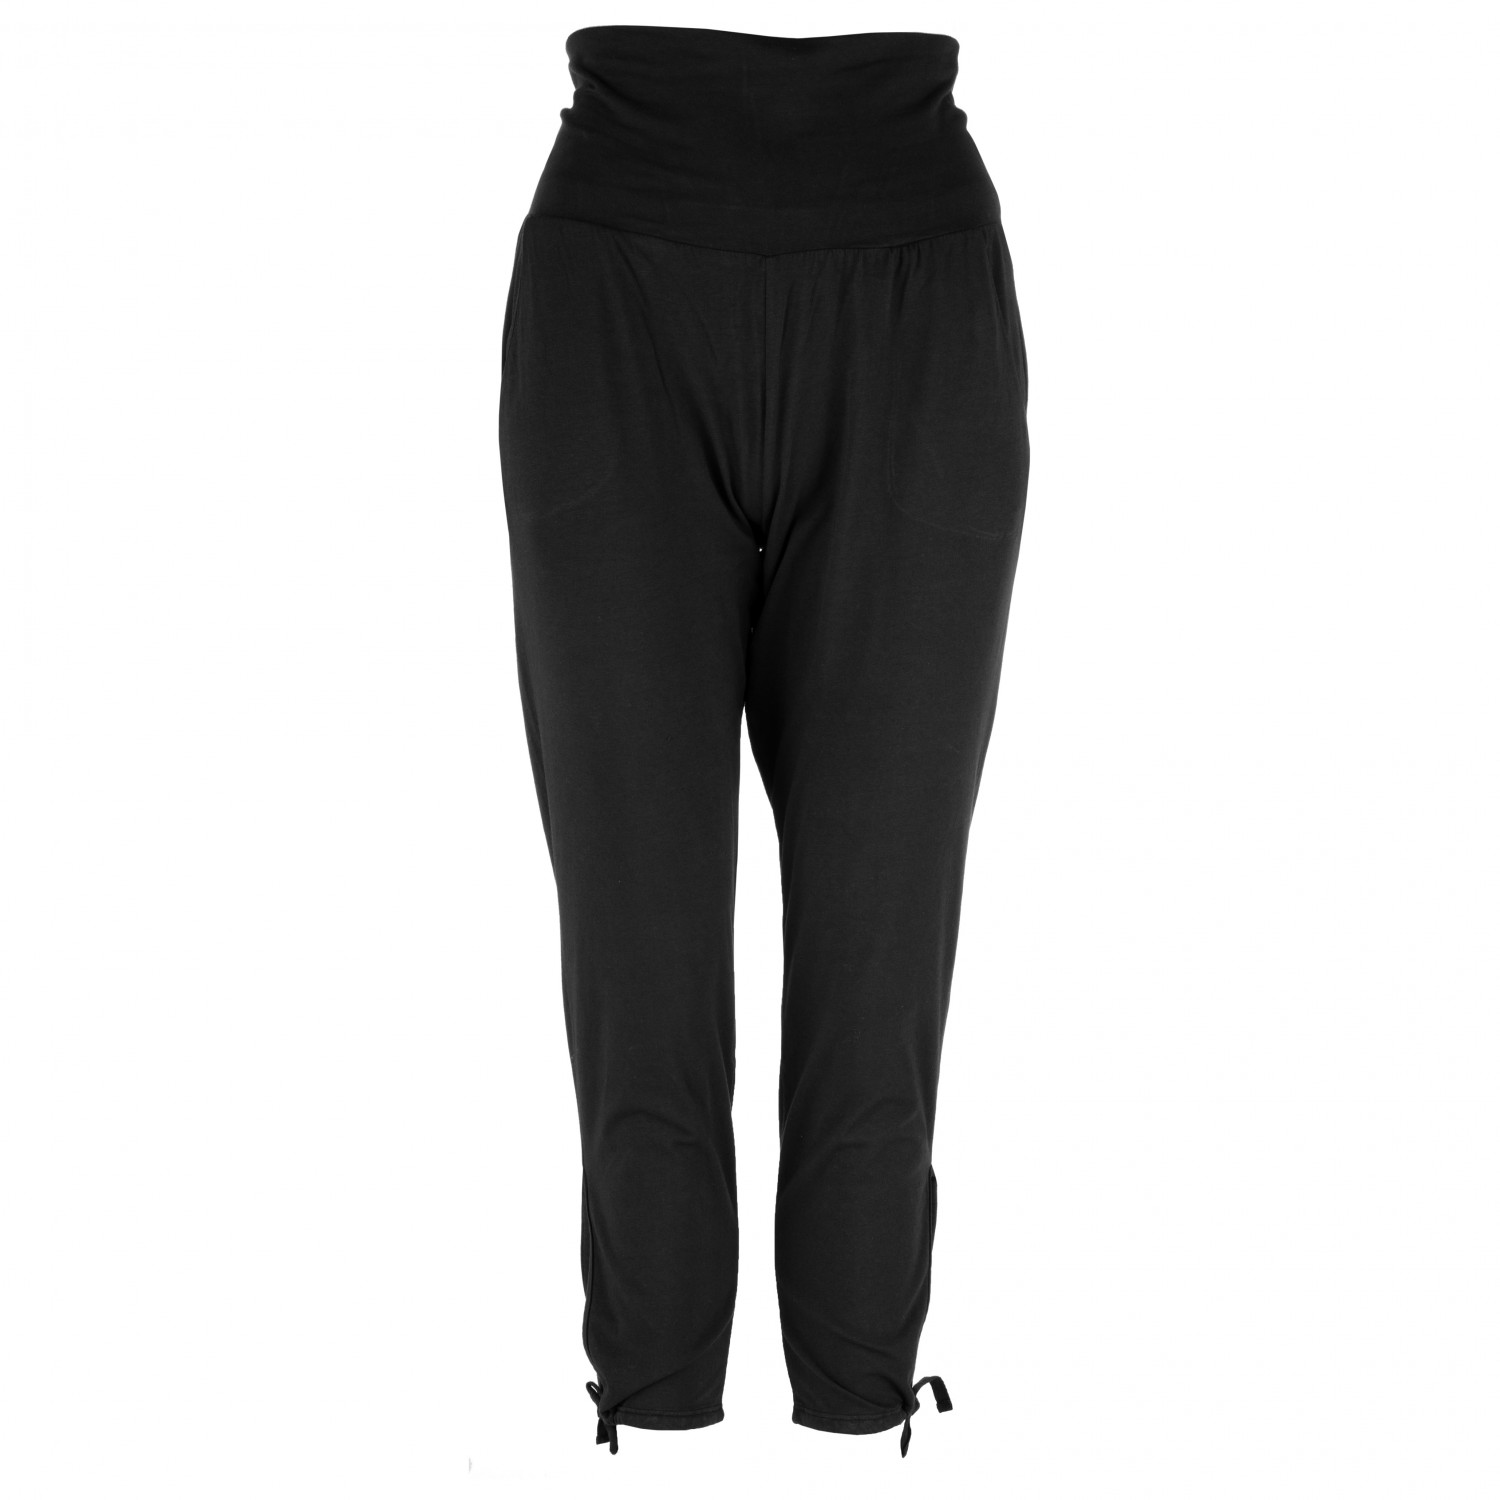 Cropped Trousers The Correct Shoes